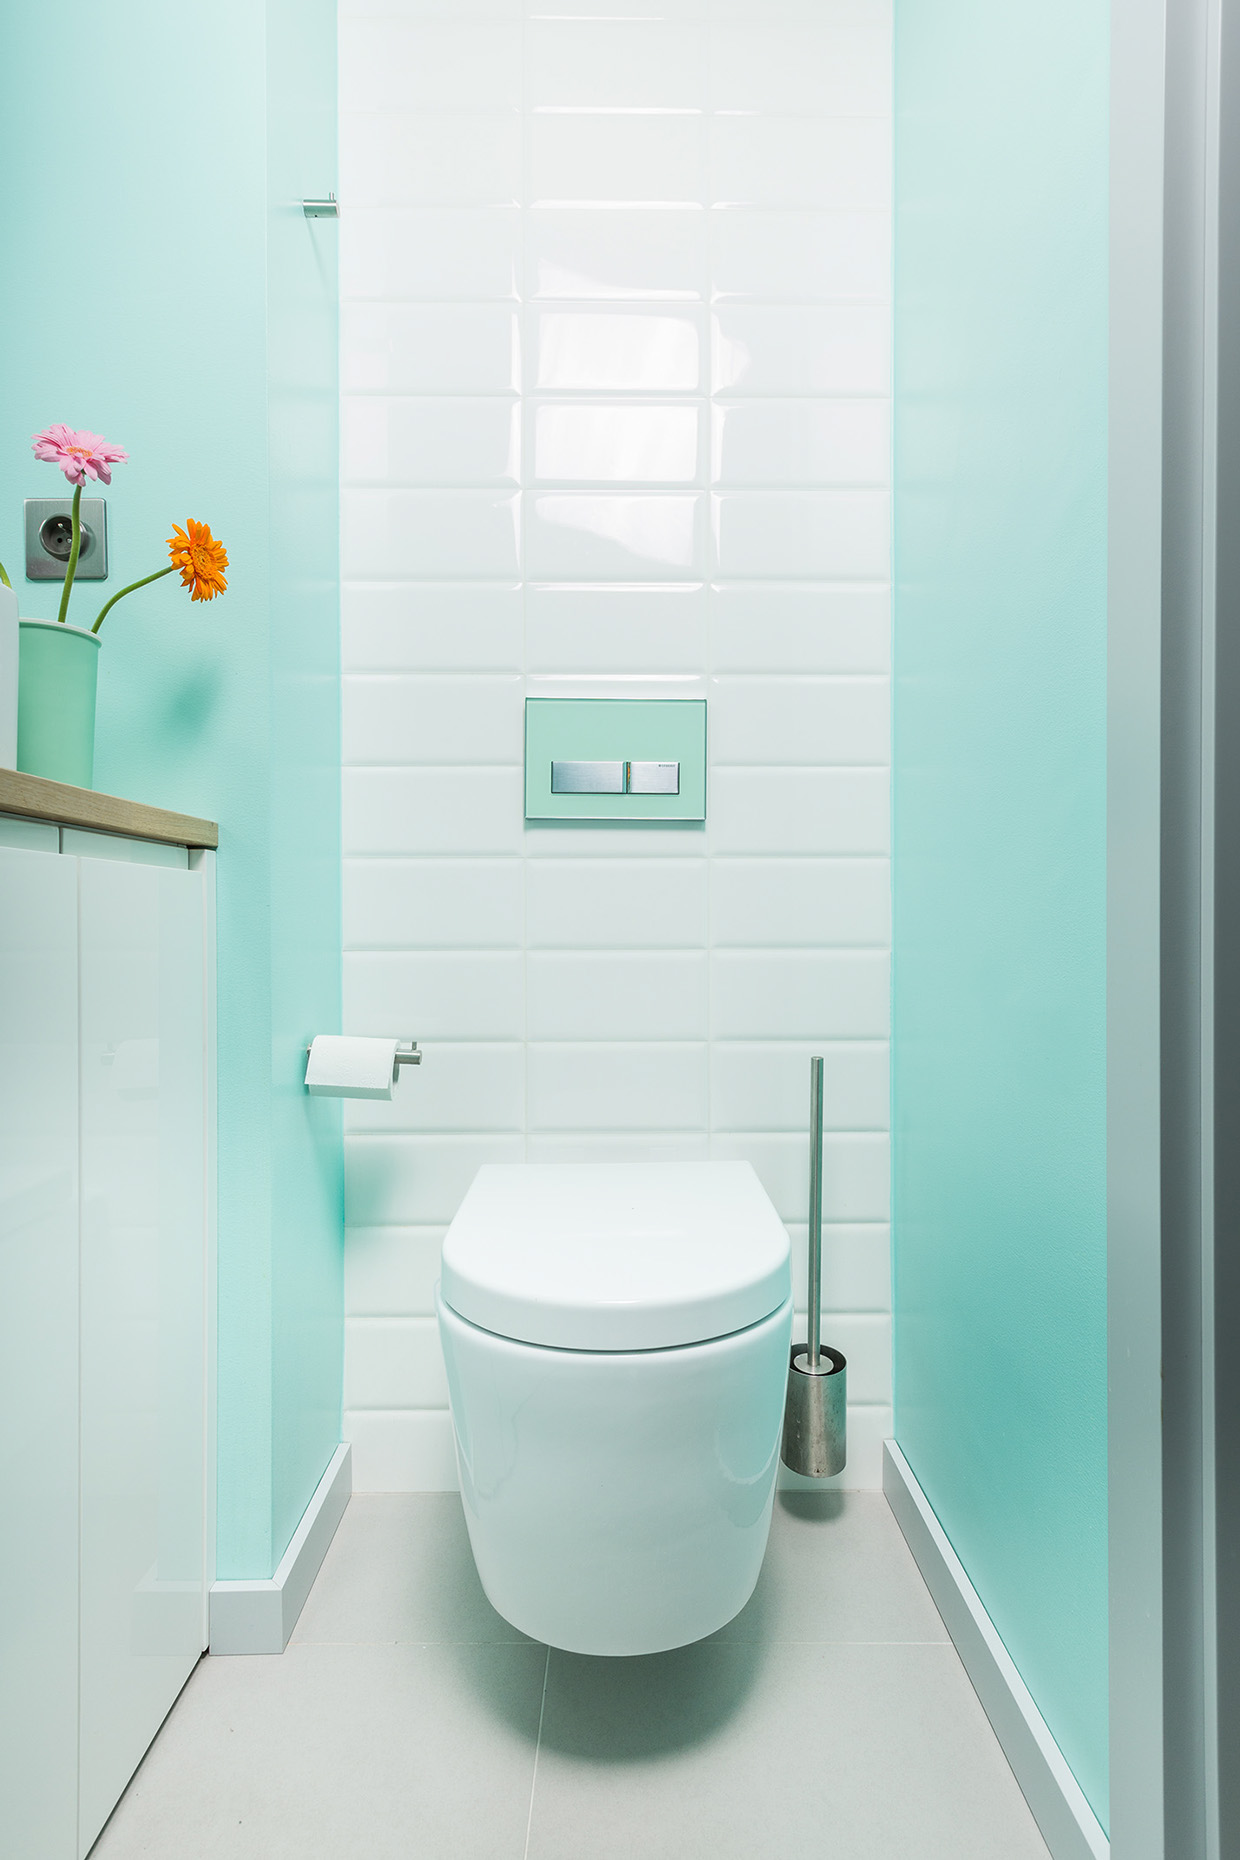 Mint green bathroom interior design ideas for Toilet interior design ideas